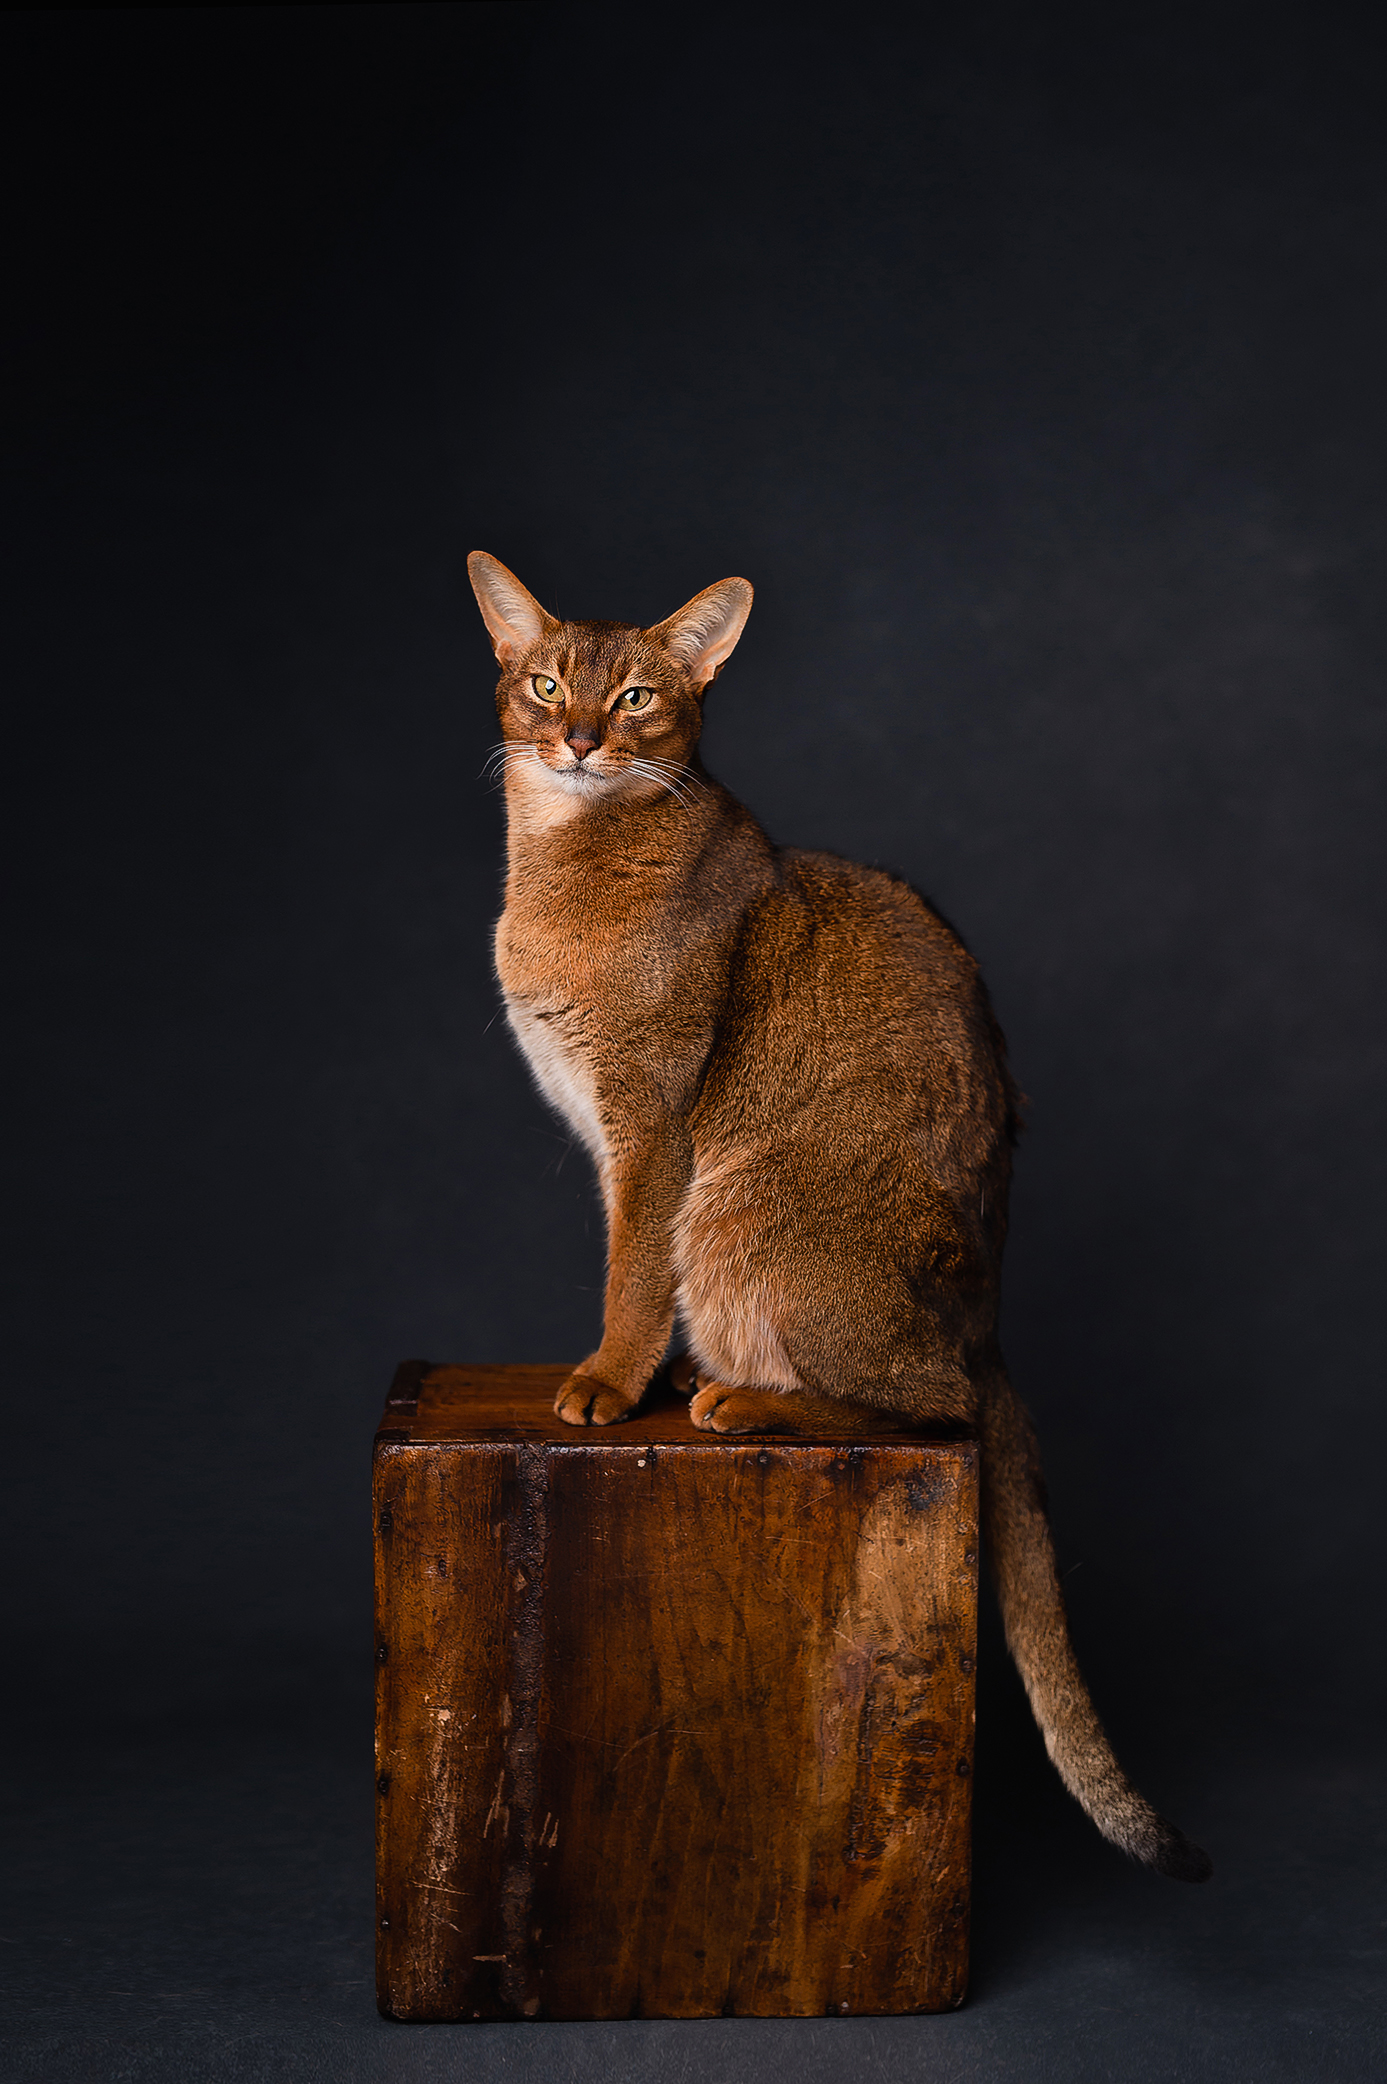 Abyssinian cat on the wooden box